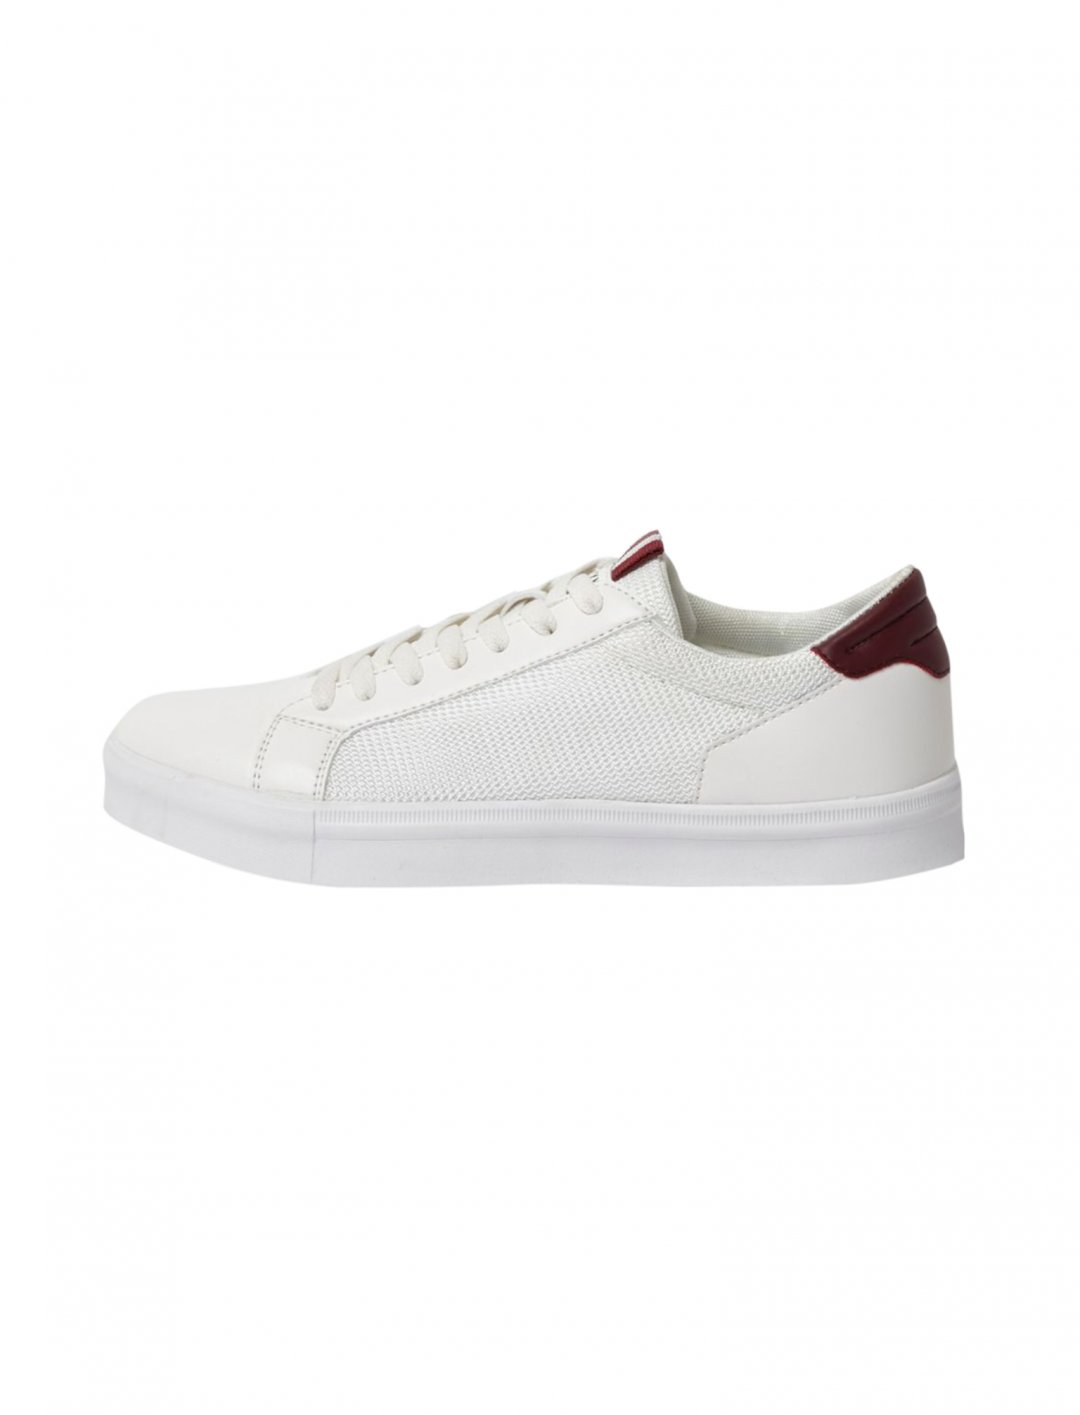 "River Island Lace-up Trainers {""id"":12,""product_section_id"":1,""name"":""Shoes"",""order"":12} River Island"